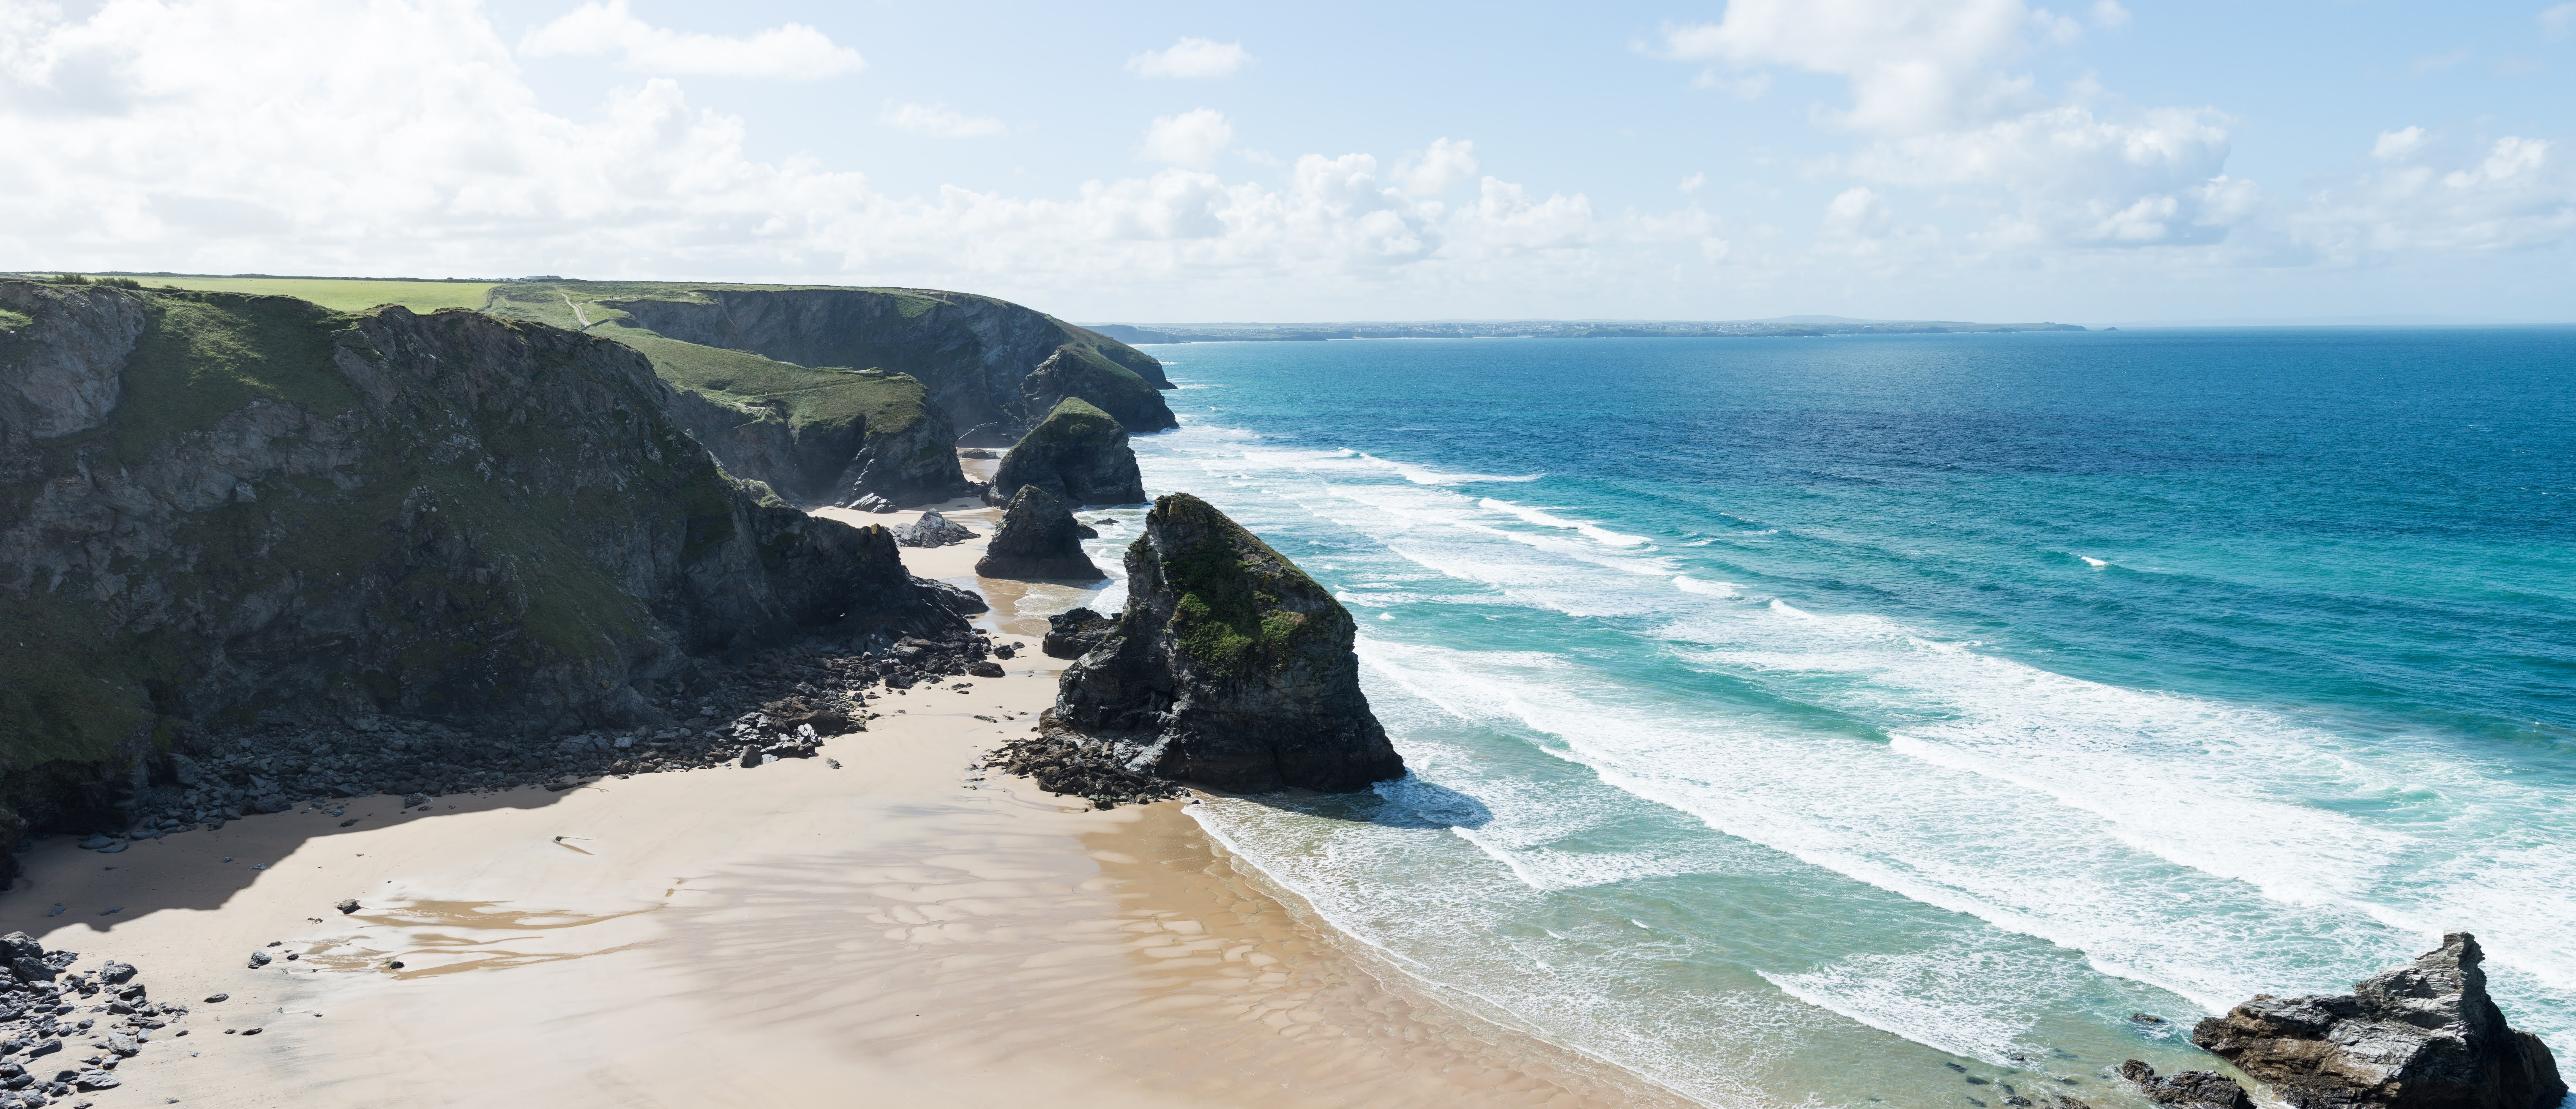 View of Bedruthan steps